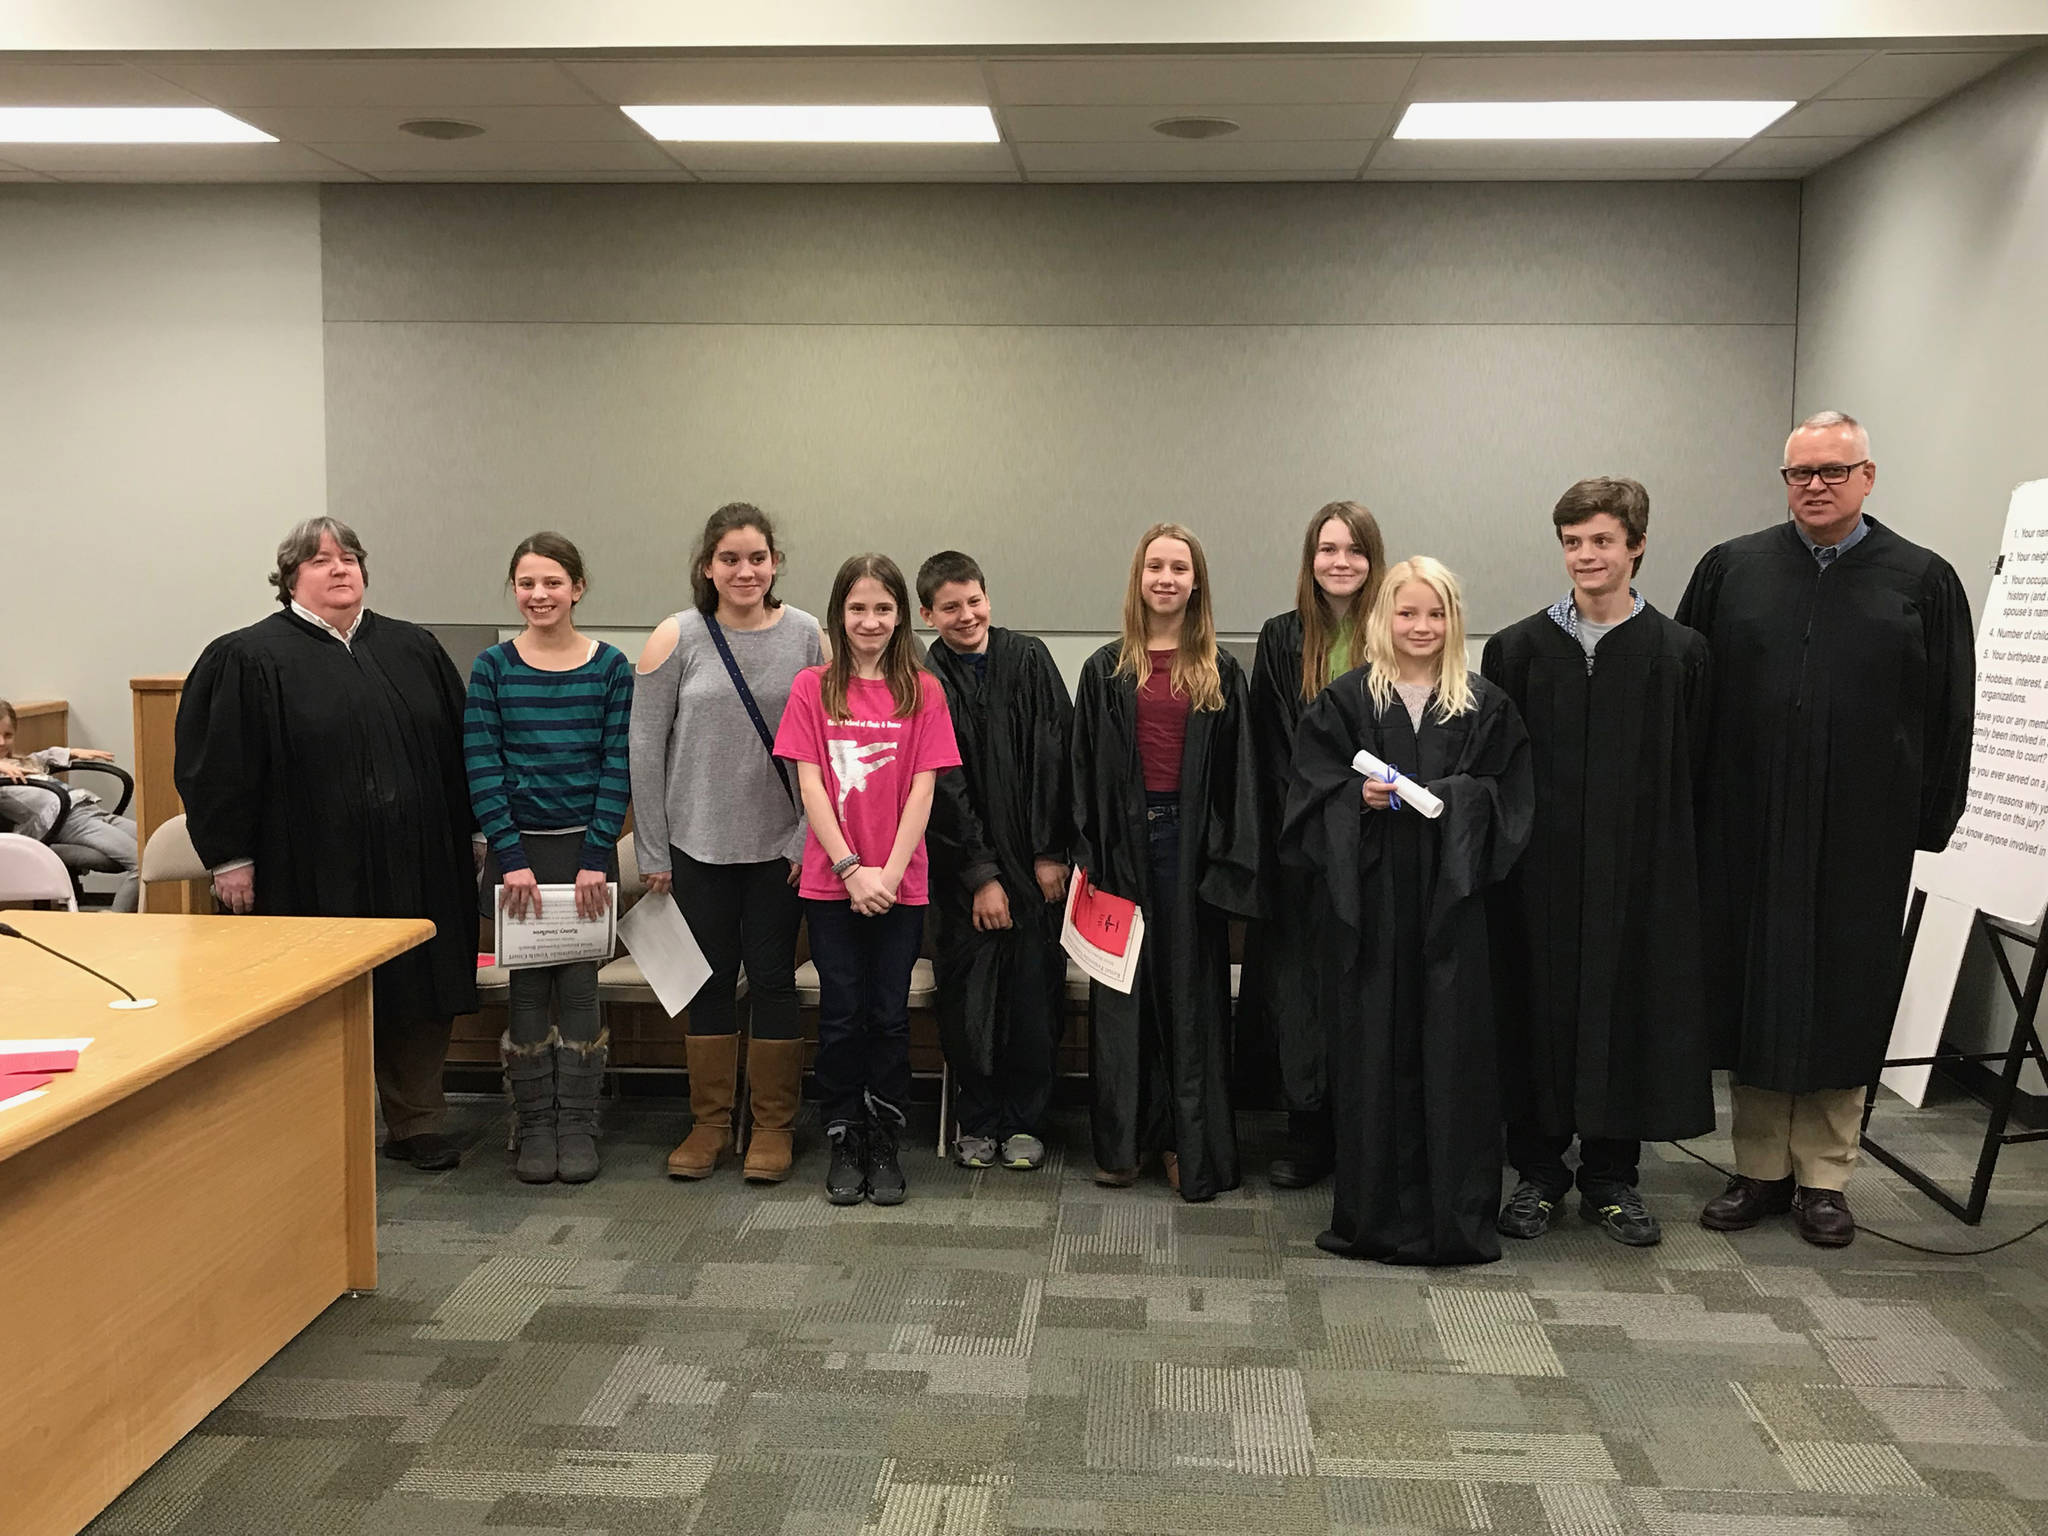 New judges and attorneys for the West Homer Elementary School / Fireweed Academy Youth Court pose after induction ceremonies at the Homer Courthouse on Monday, Jan. 22, 2018. Homer Disctrict Court Judge Margaret Murphy, far left, and Kenai Superior Court Judge Charles Huguelet, far right, administered the oaths of office. (Photo provided)